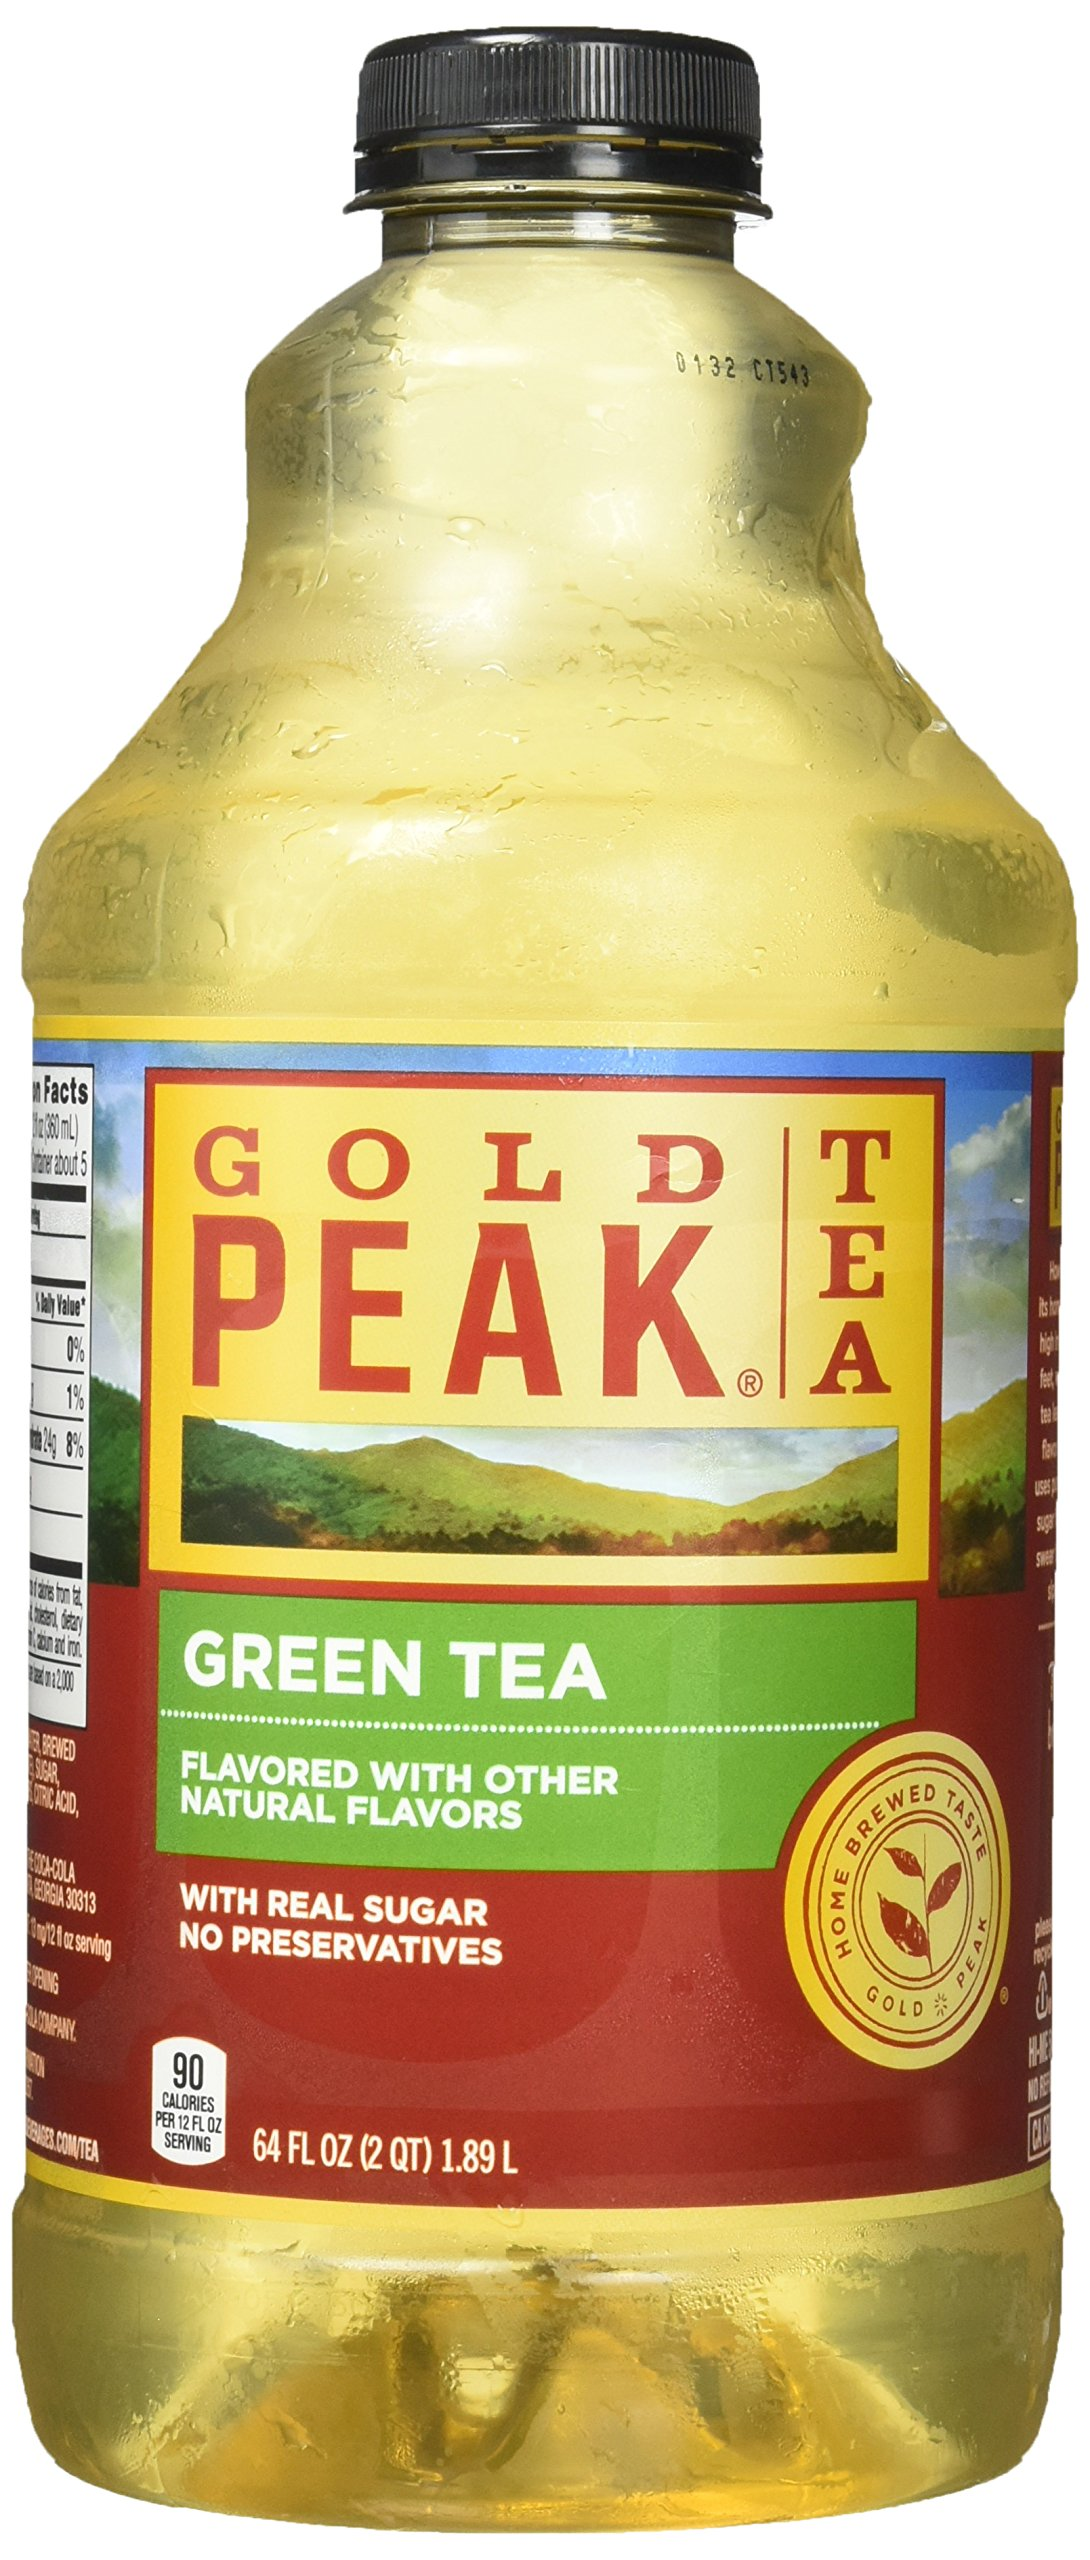 Gold Peak Tea, Green Tea, 64 fl oz